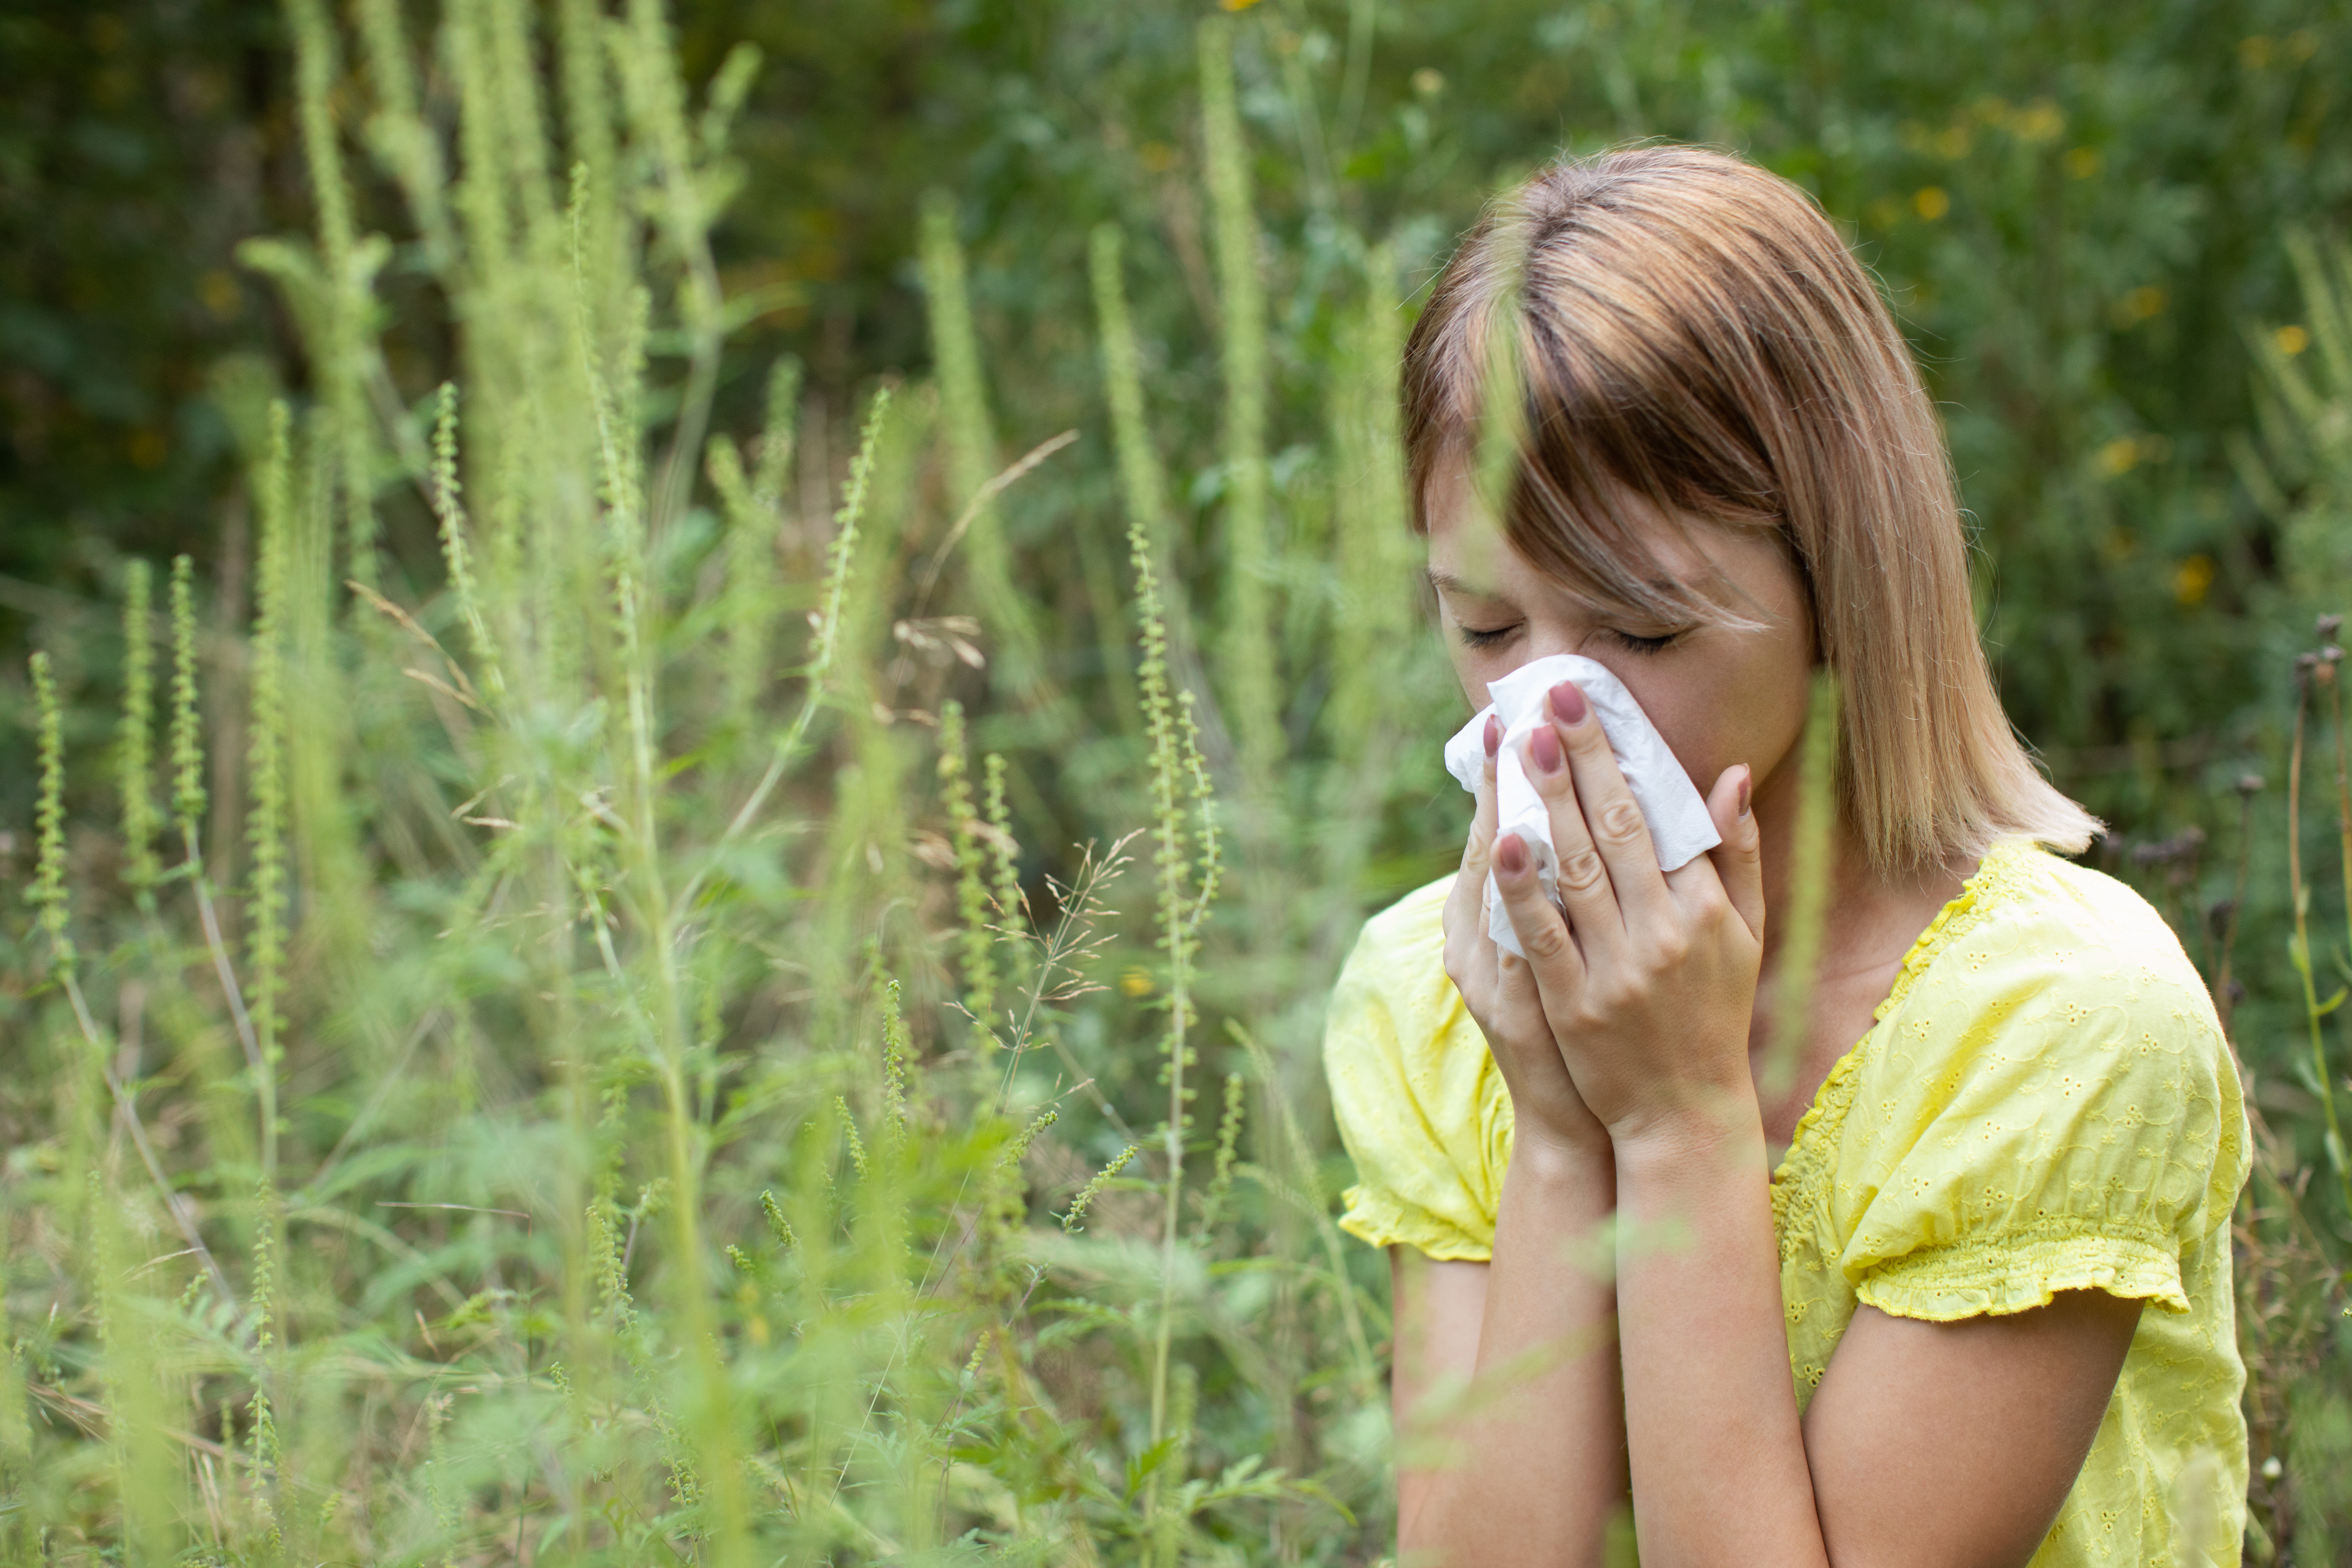 A woman covers her mouth and nose in a field of ragweed.